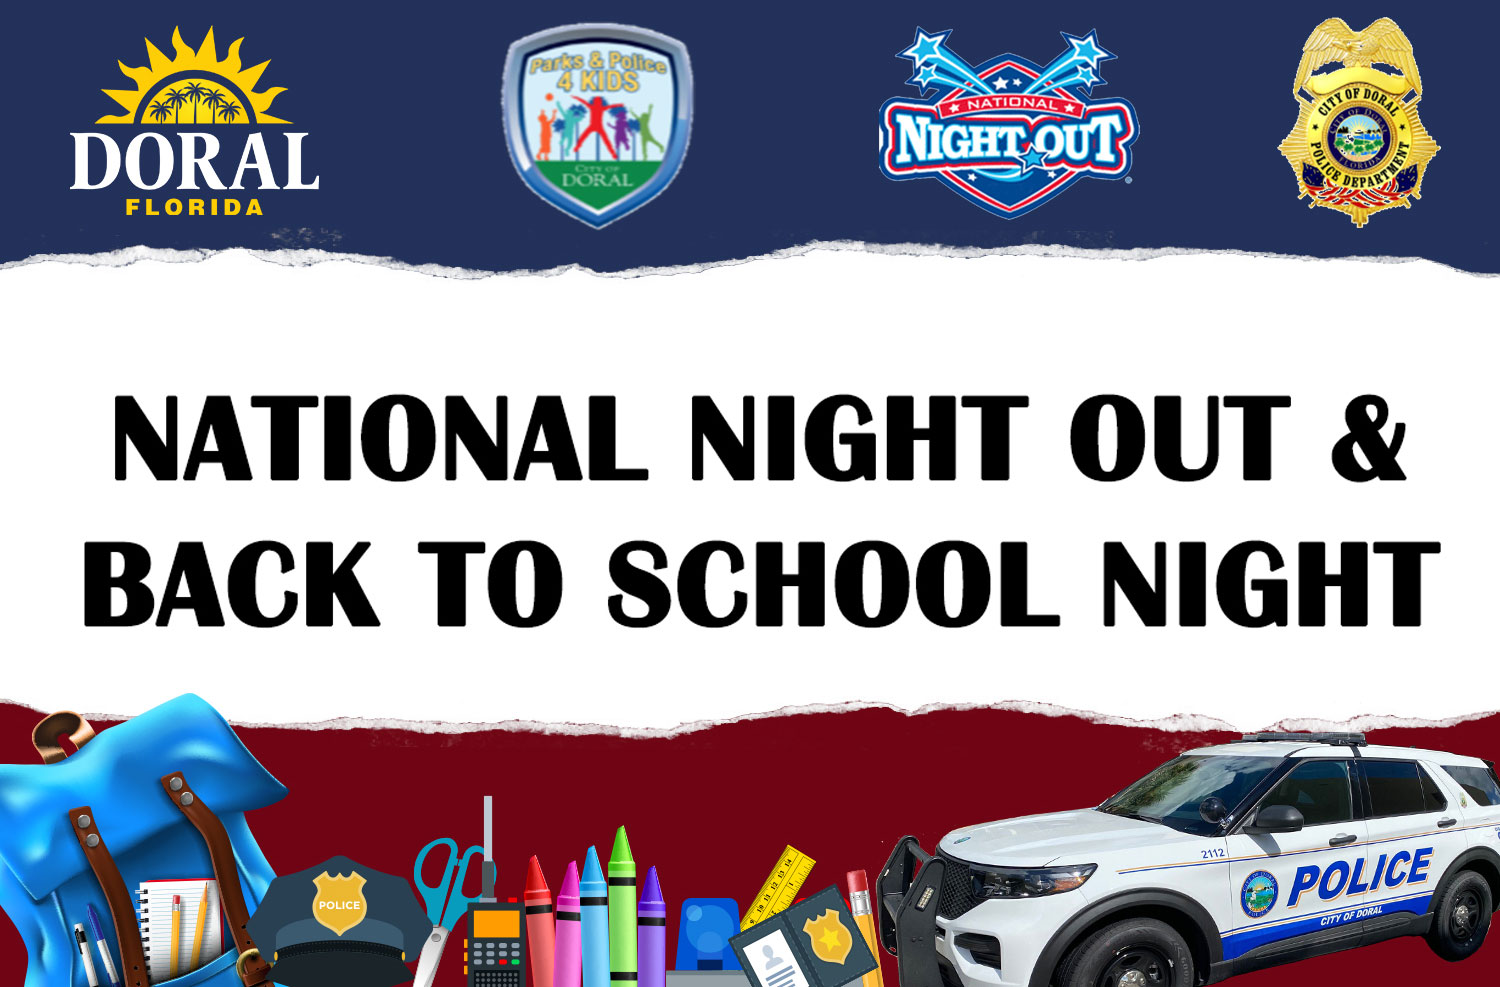 National Night Out & Back to School Night